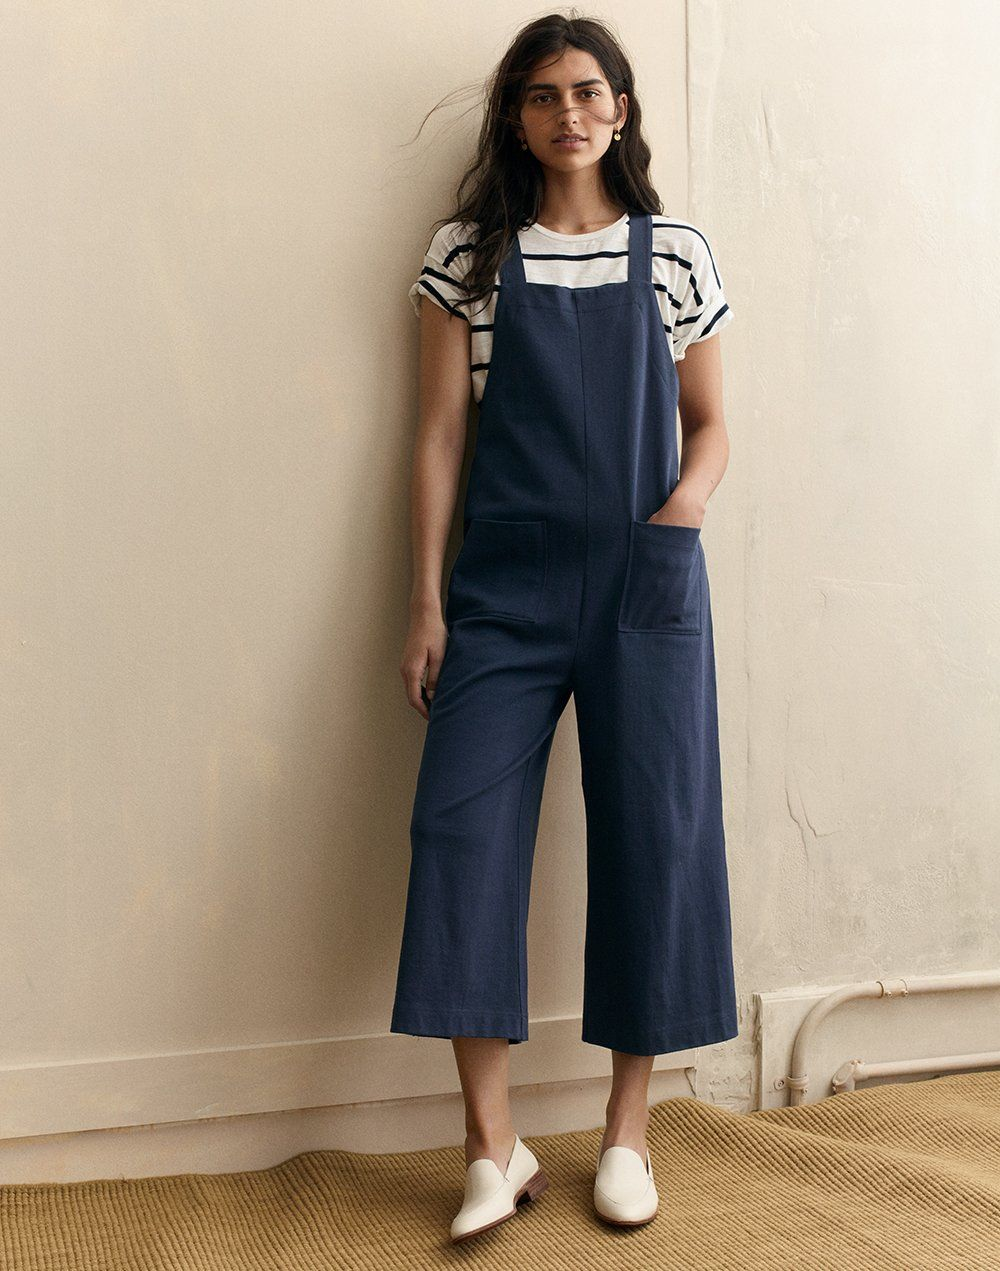 e4267fec456 madewell patch-pocket overalls worn with whisper cotton crewneck tee + the  frances loafer.